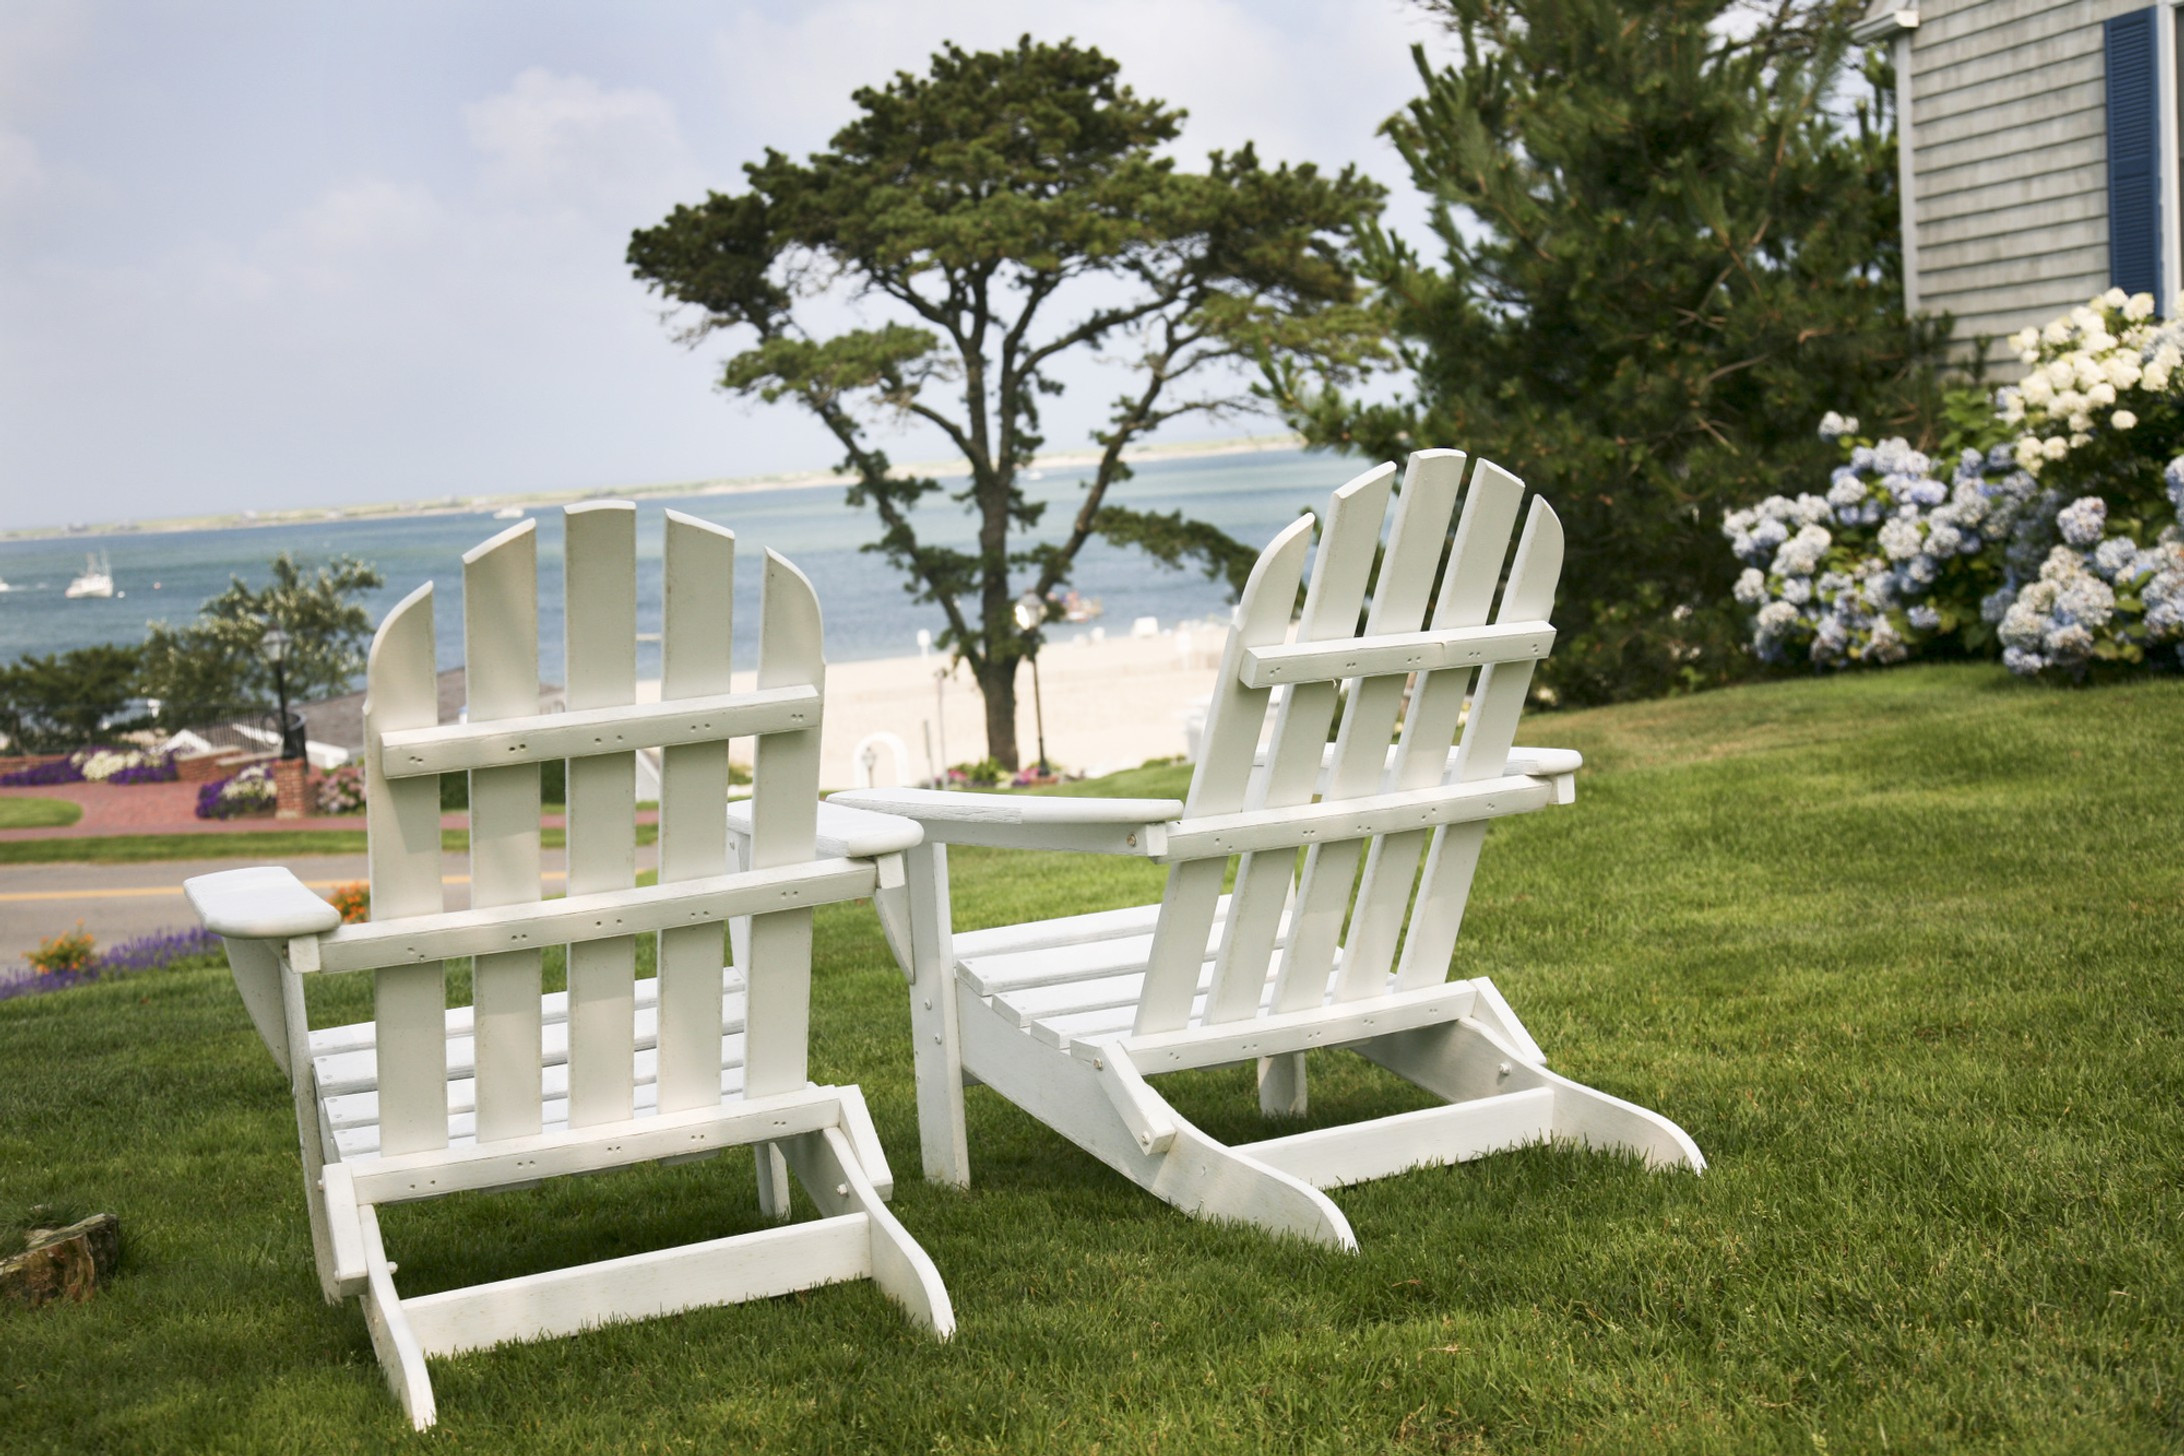 Vacation Rental Services